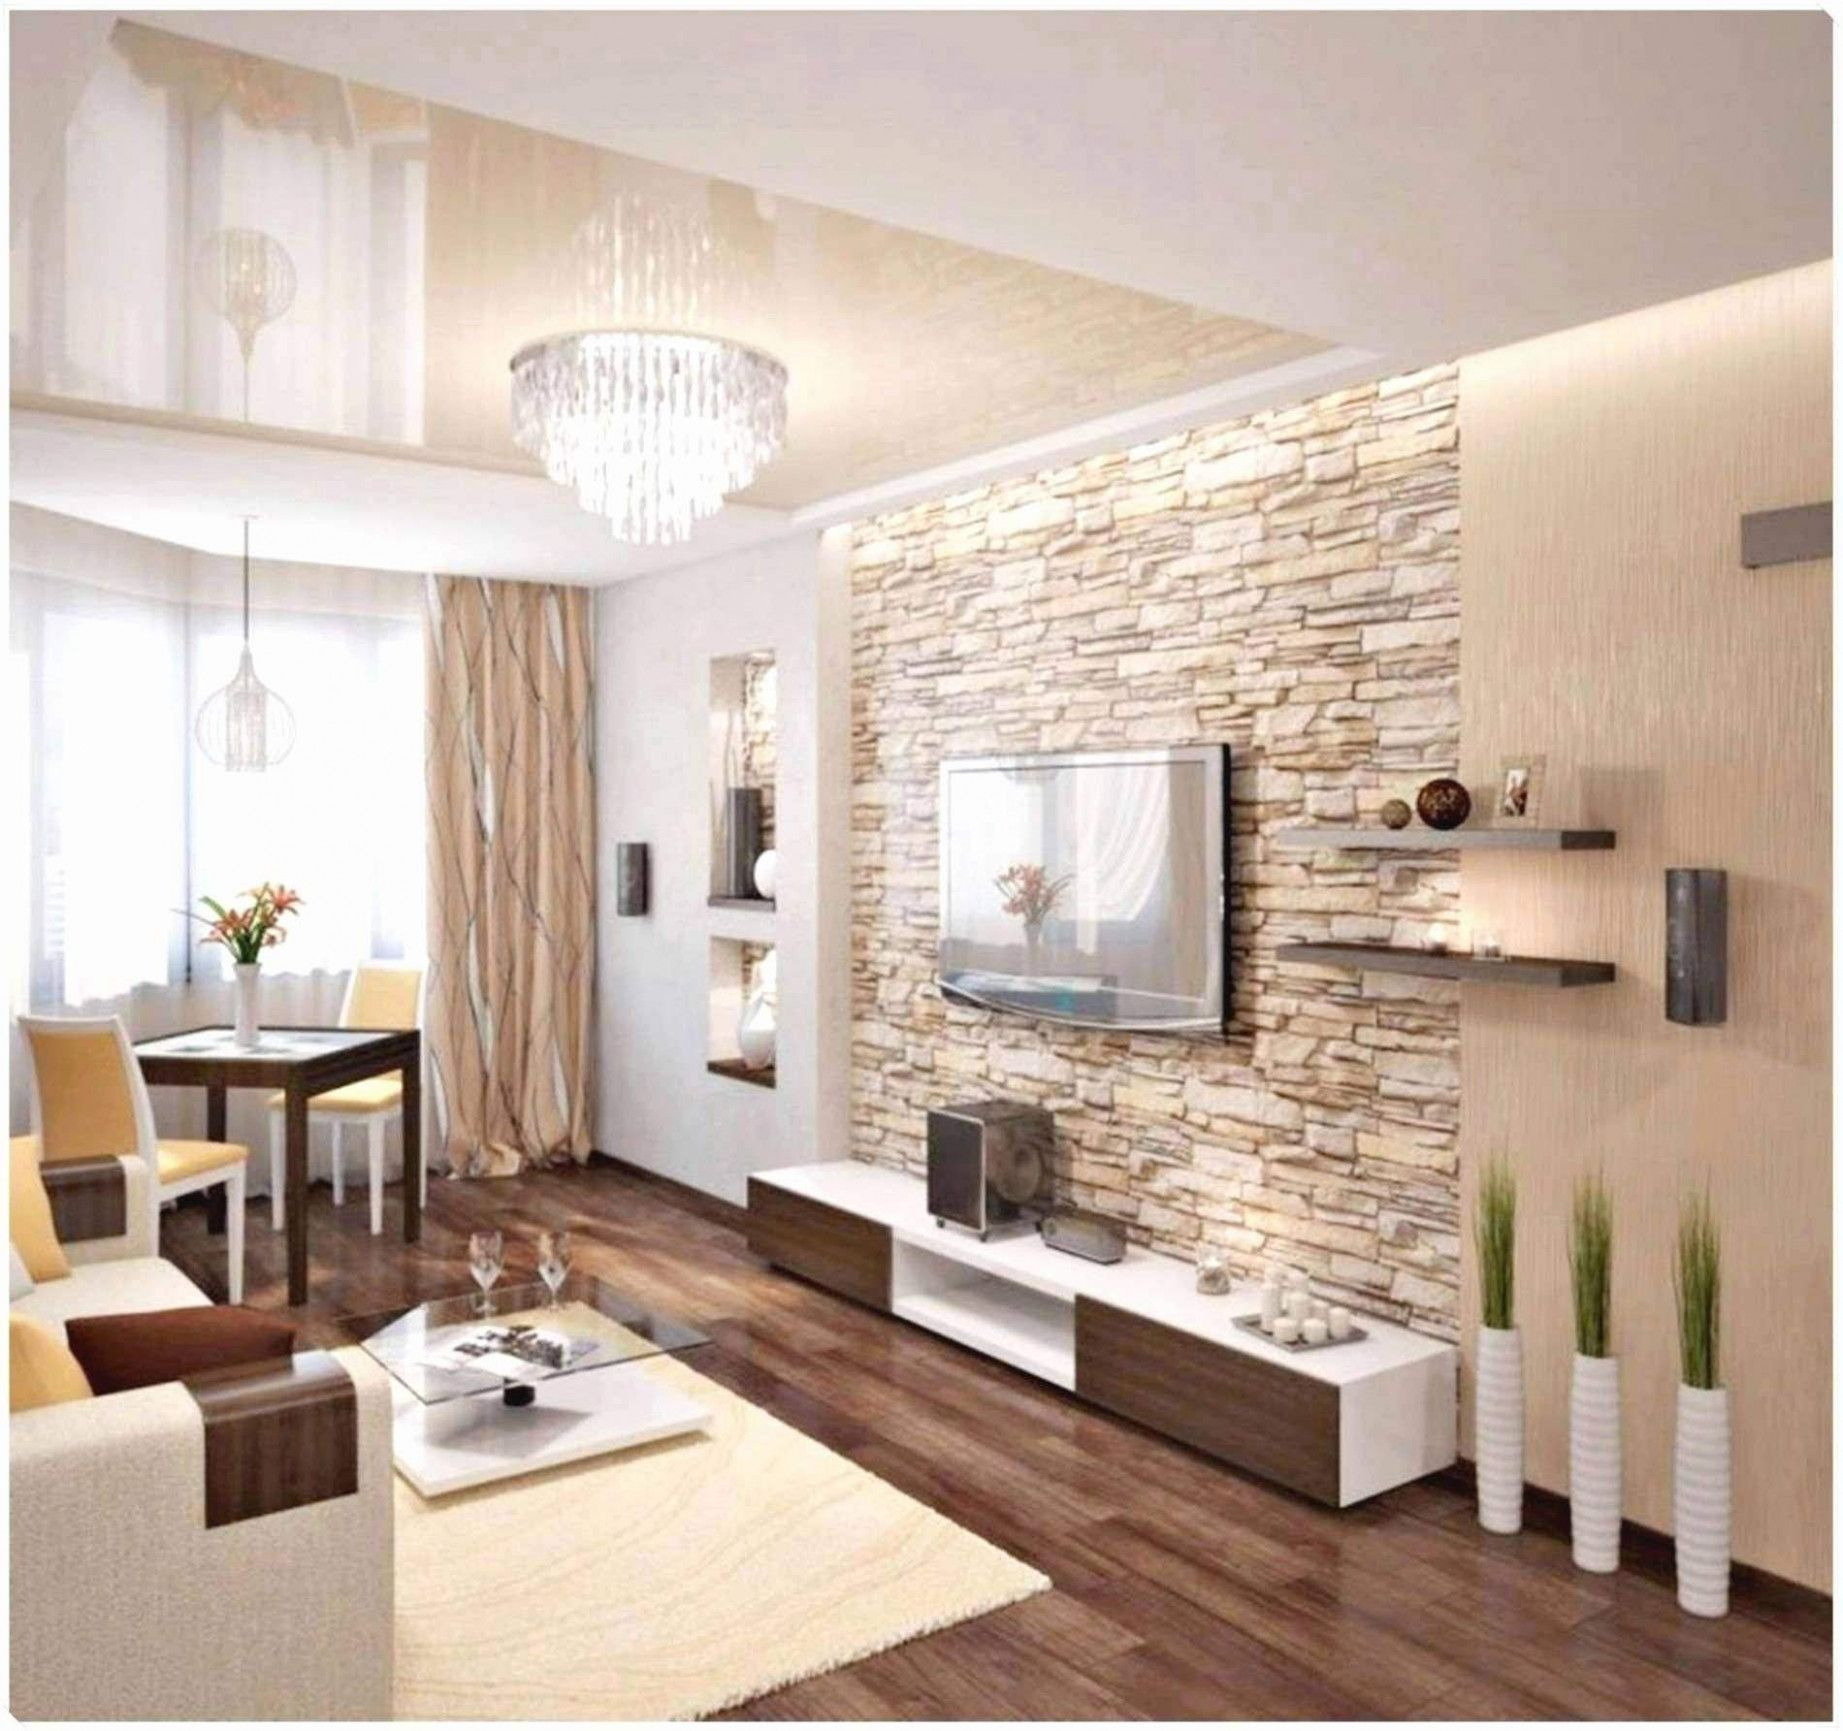 10 Dach Lebende Ideen in 10  Living room decor modern, Stone